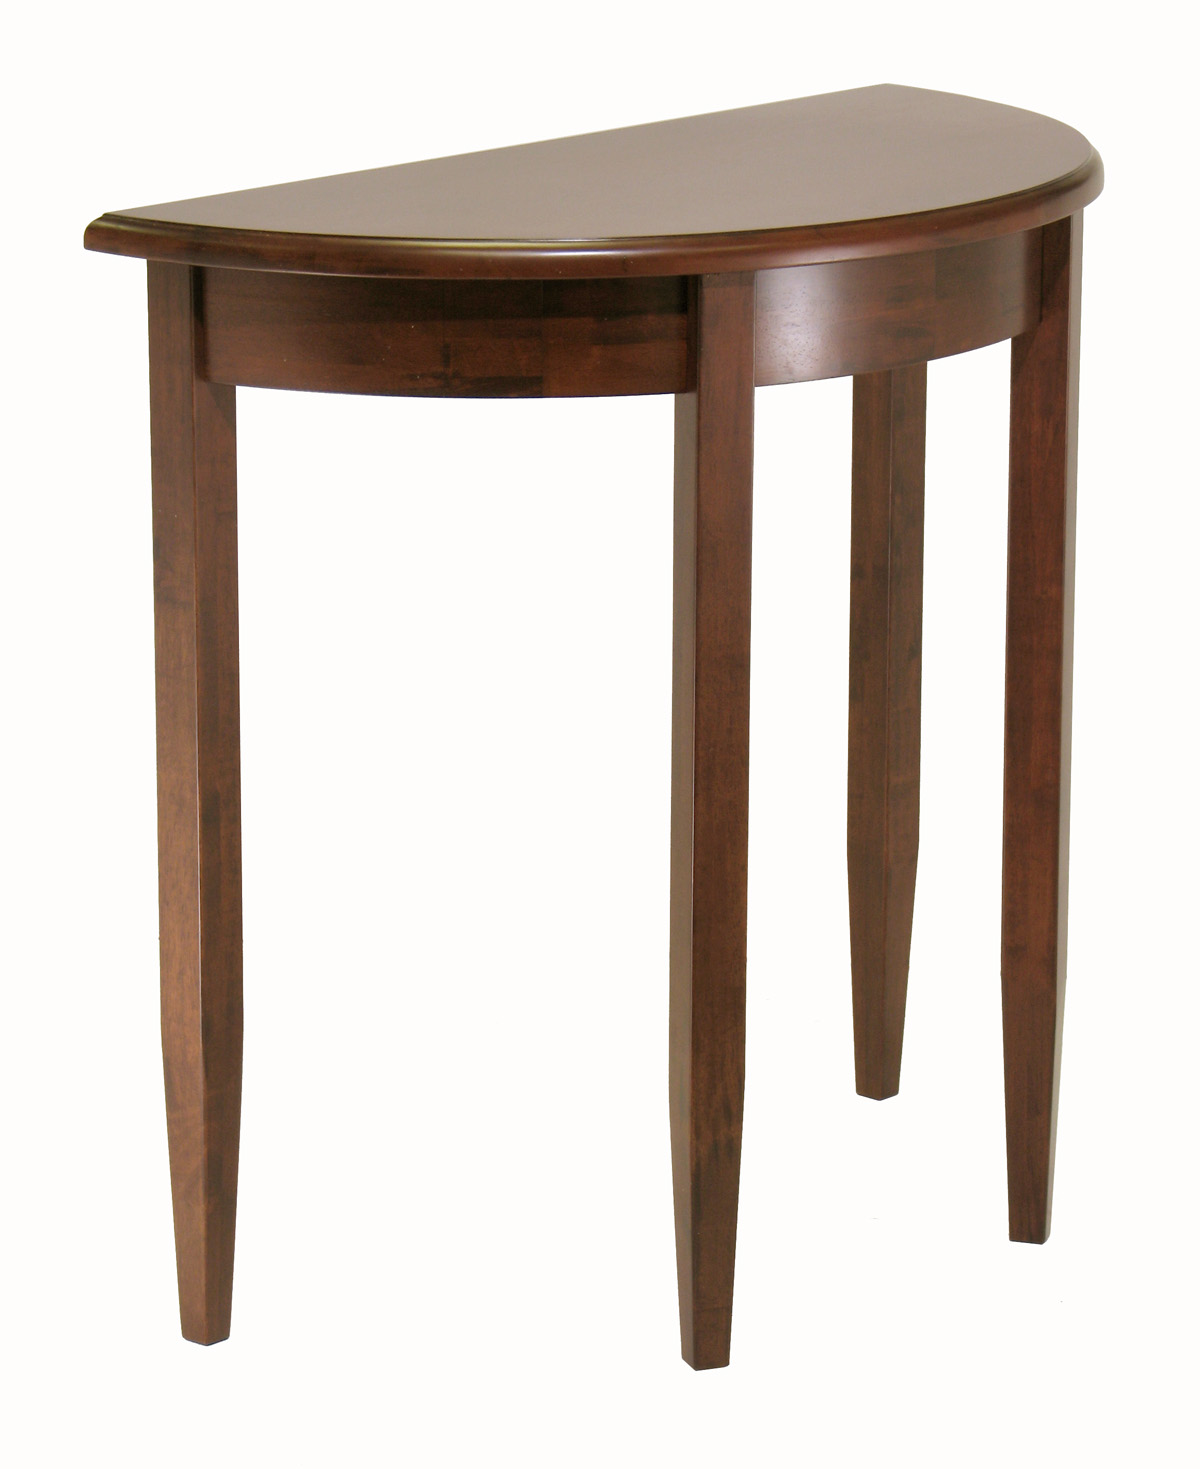 Winsome 94132 Concord Half Moon Table- Antique Walnut